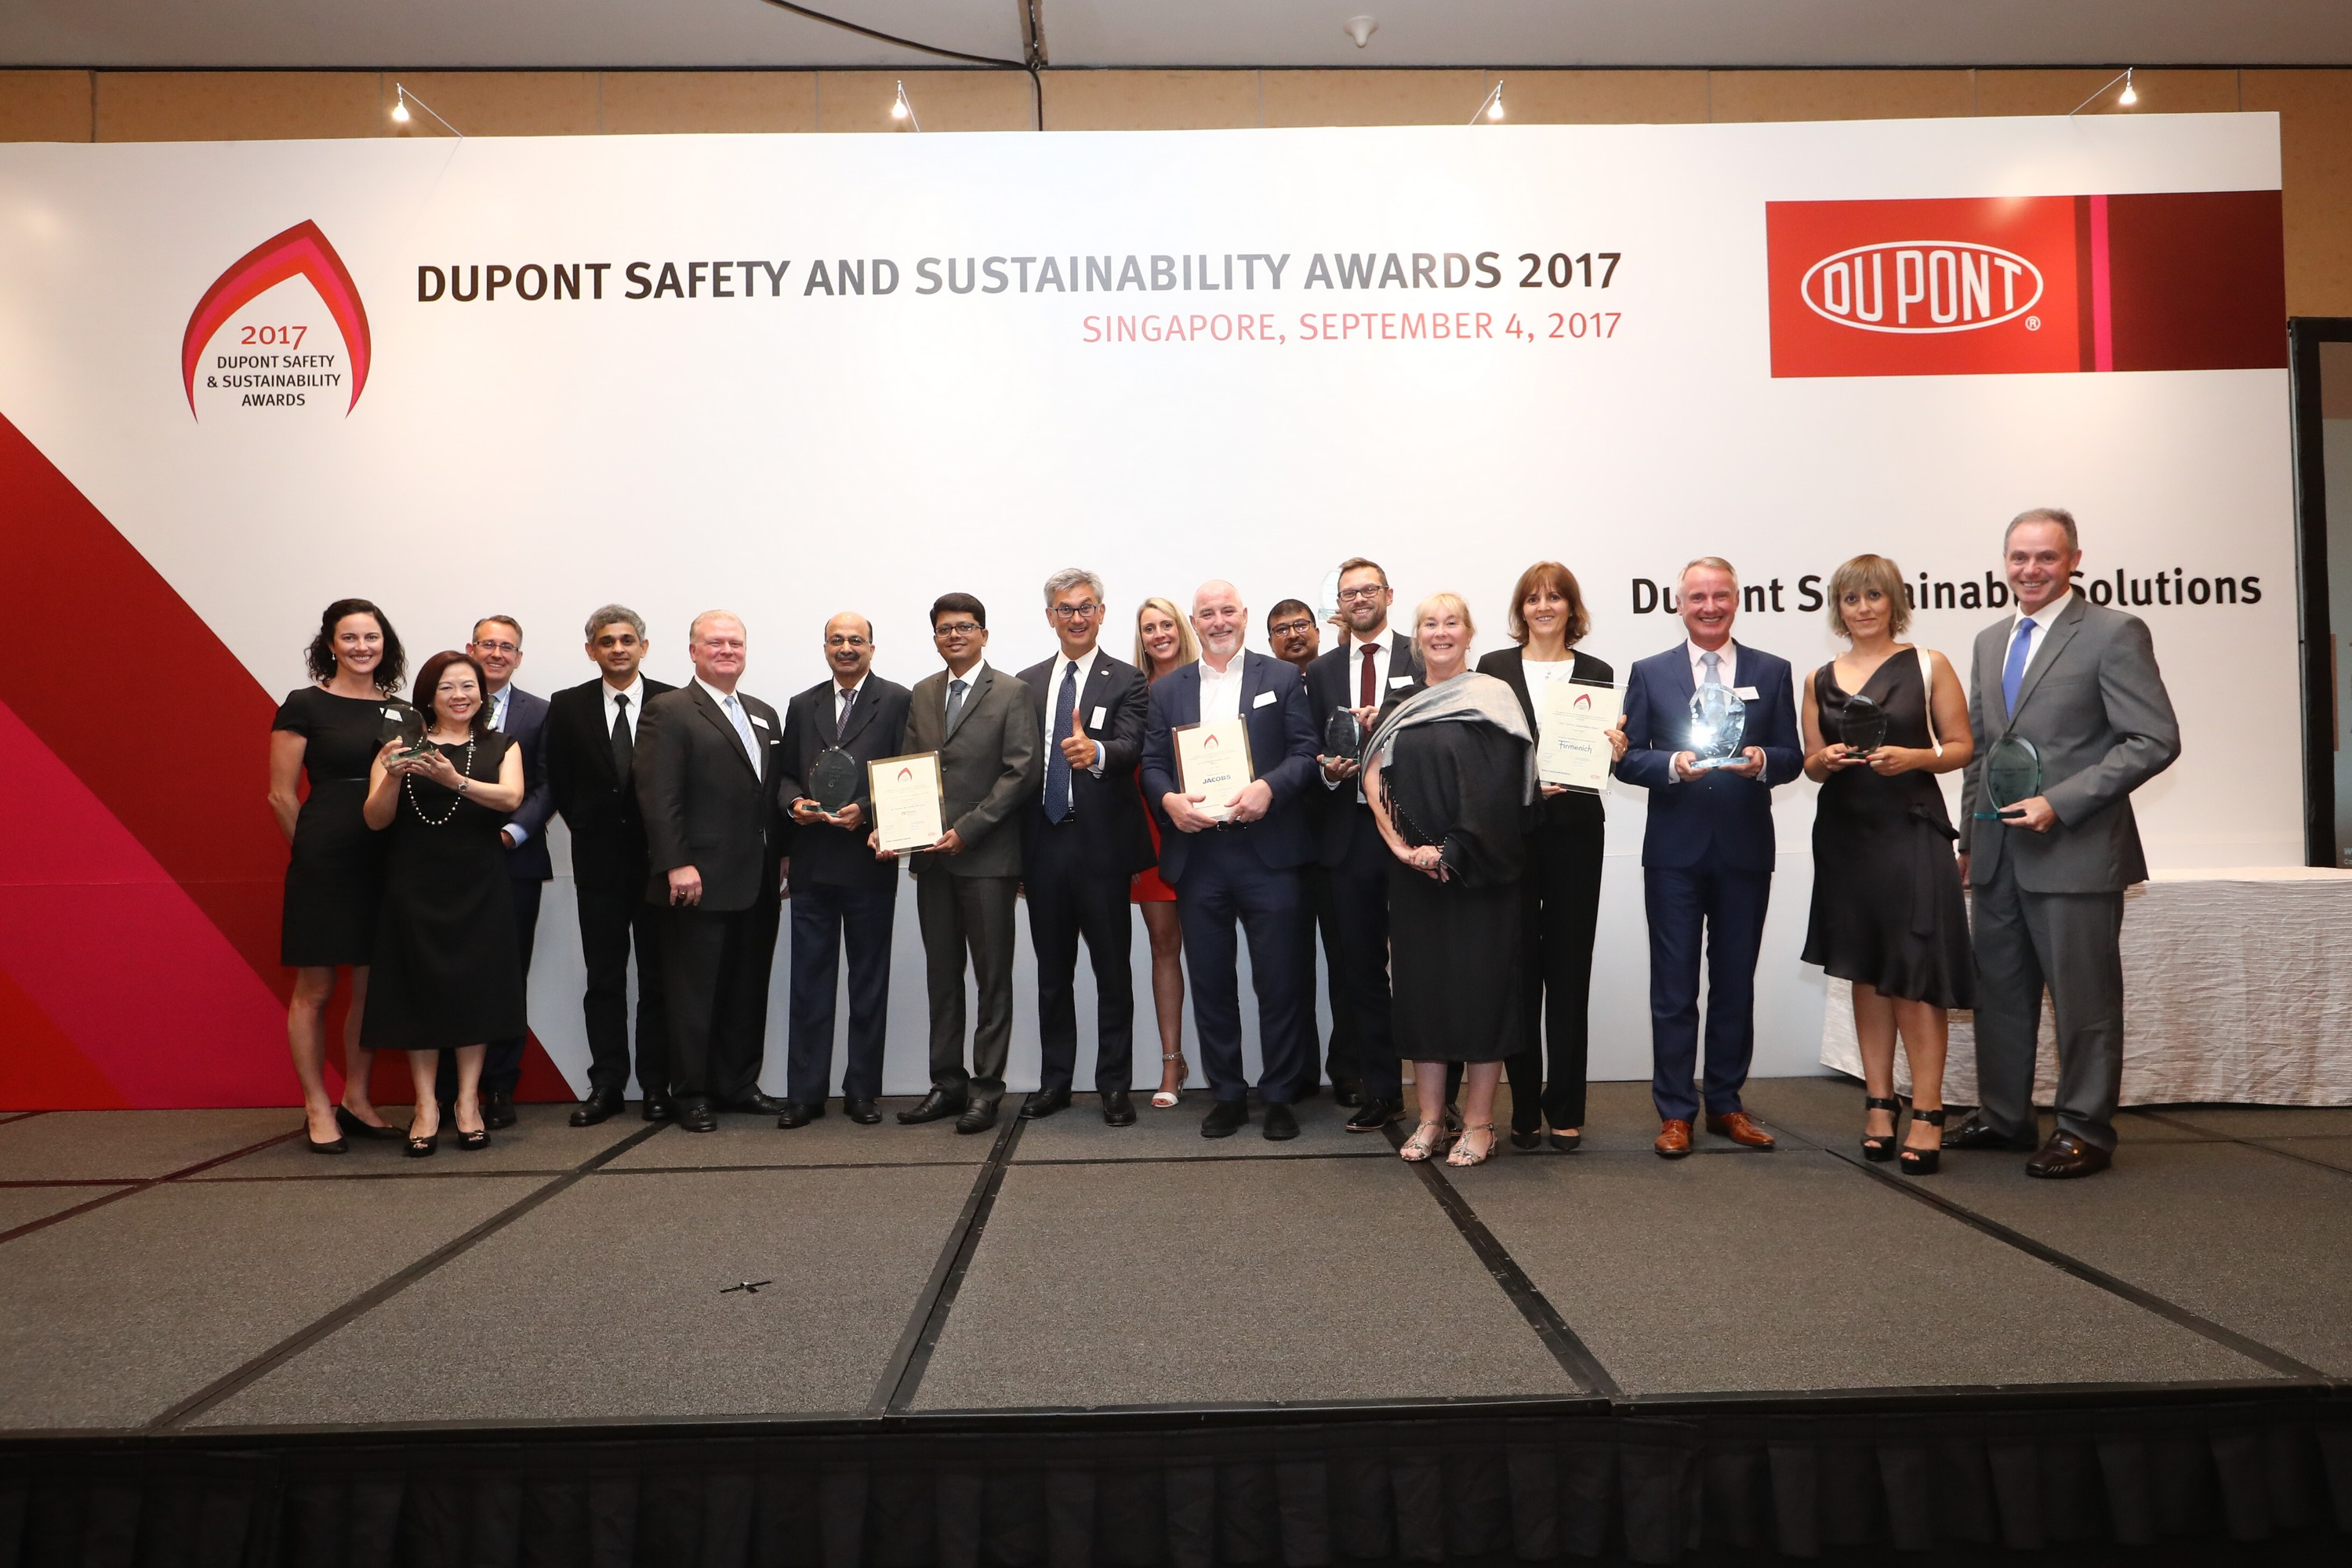 DuPont Sustainable Solutions annuncia i vincitori dei Safety and Sustainability Awards 2017